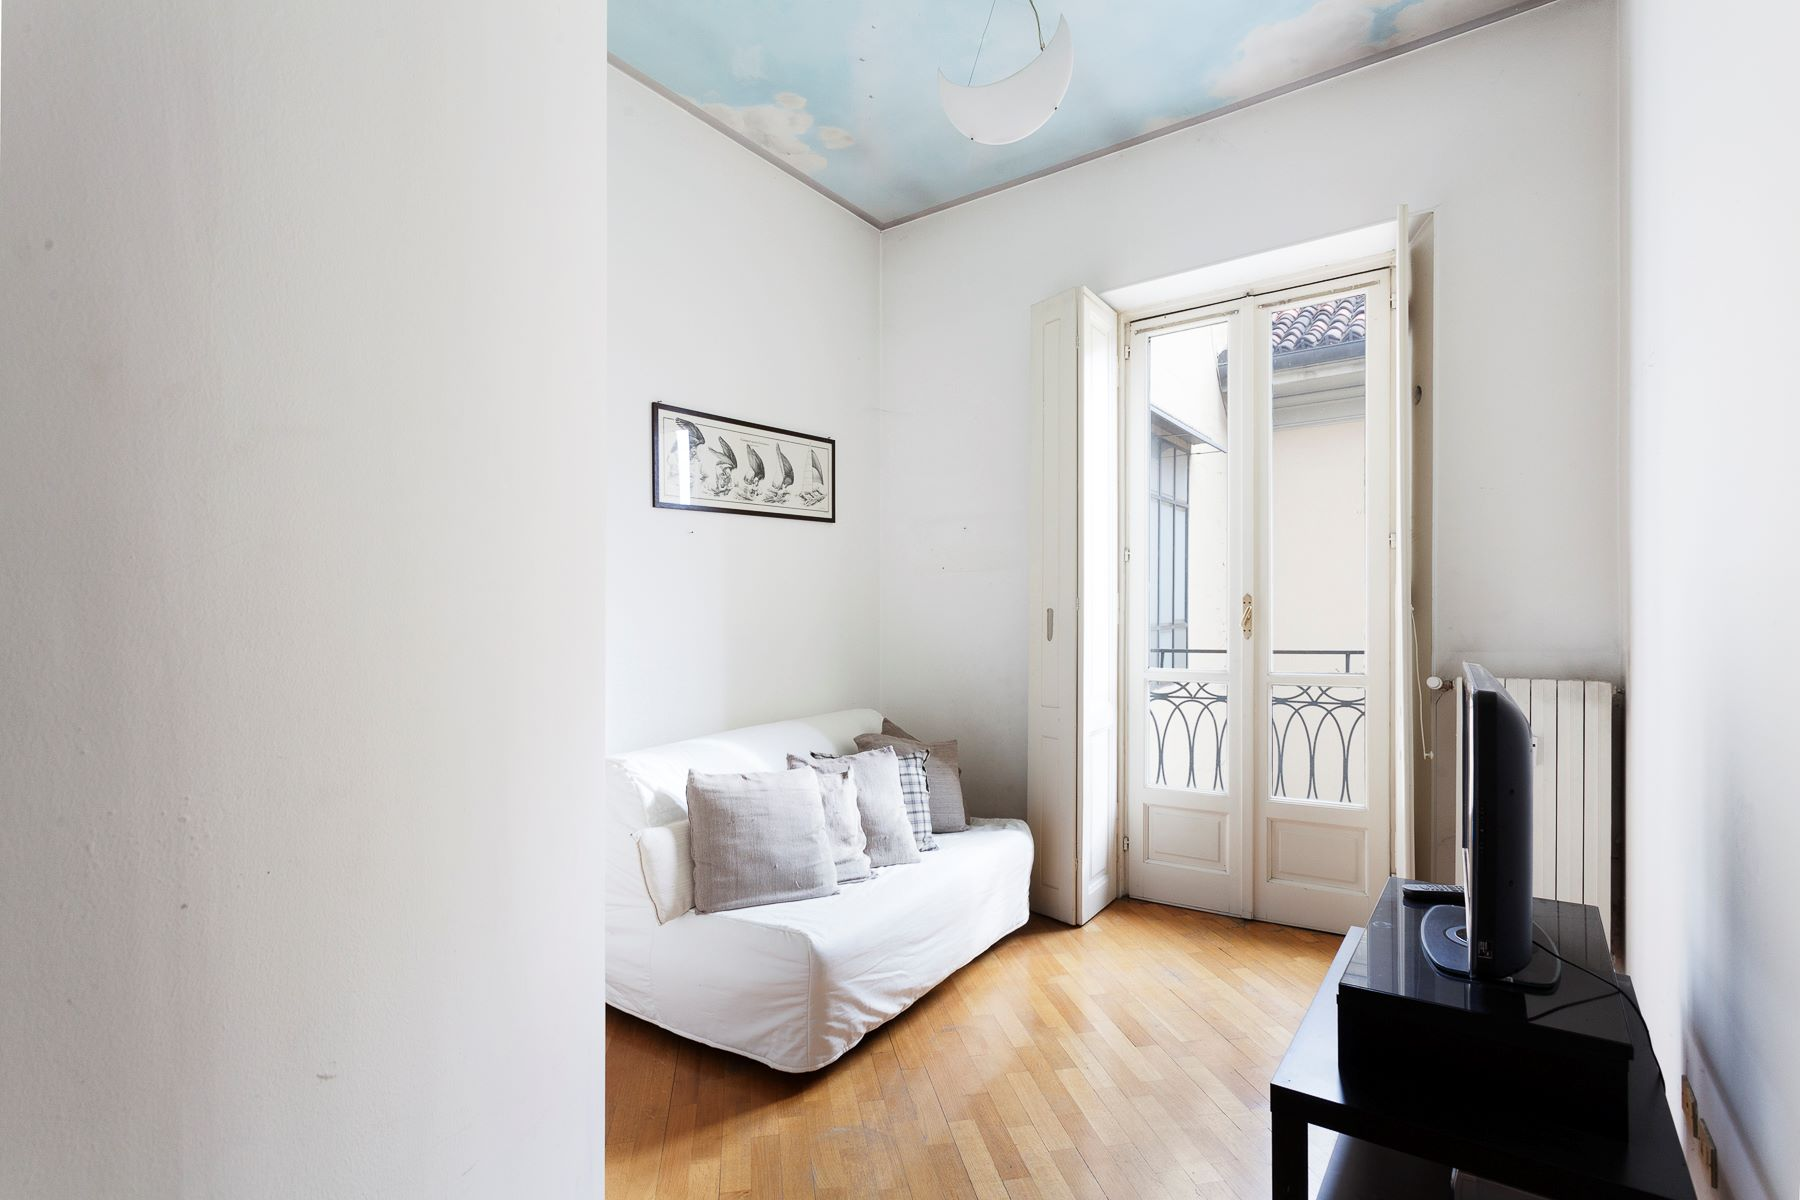 Additional photo for property listing at Bright Apartment with overlooking Mole Antonelliana and Cappuccini Via Maria Vittoria Turin, Turin 10123 Italia